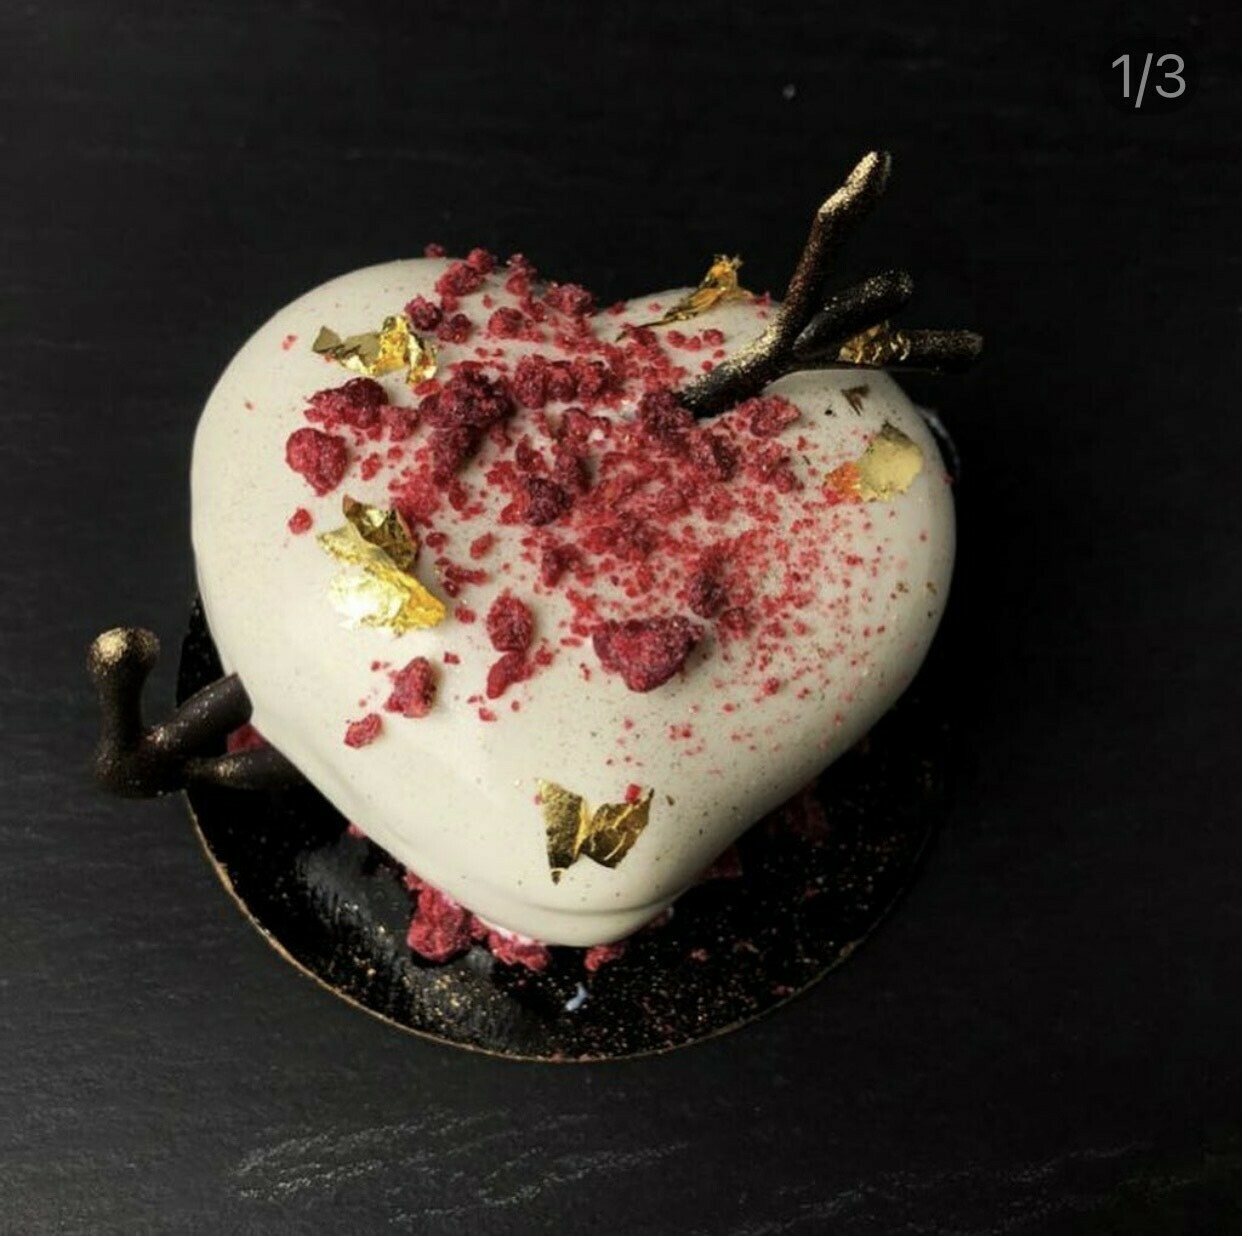 PRE-ORDER Valentine's Day White Chocolate Mousse Heart for 2/13 or 2/14